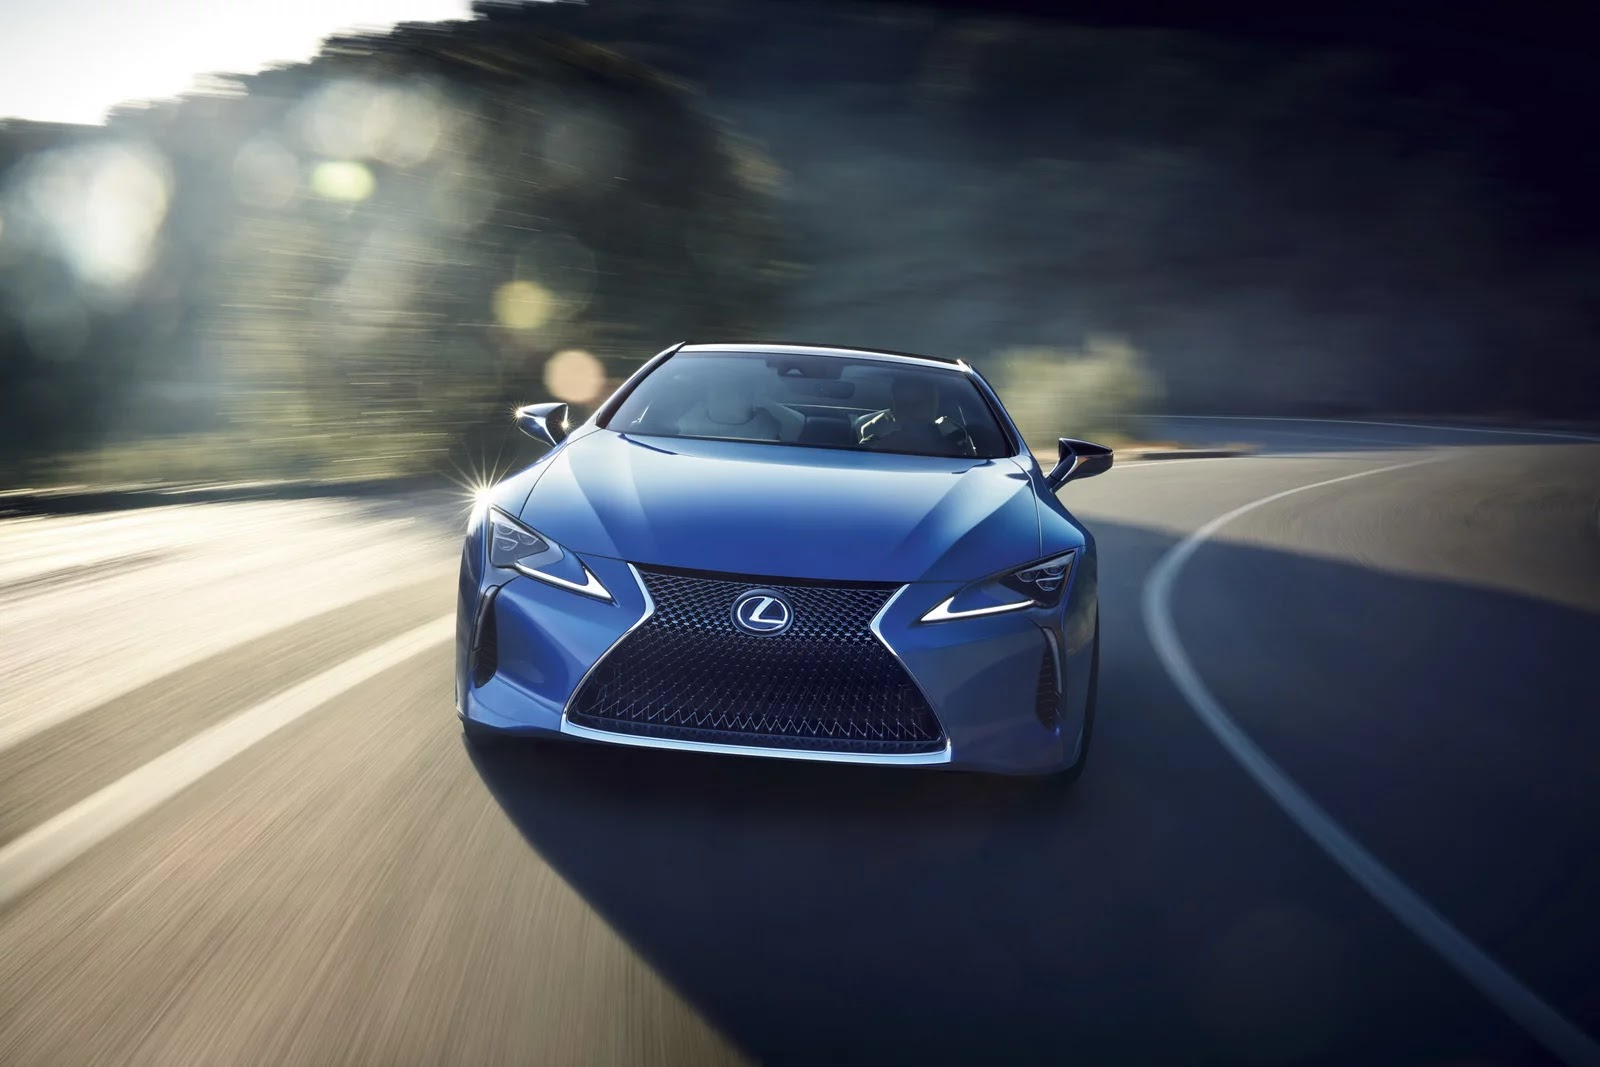 Lexus President Thinks EV Tech Not Ready Yet For Mass Adoption